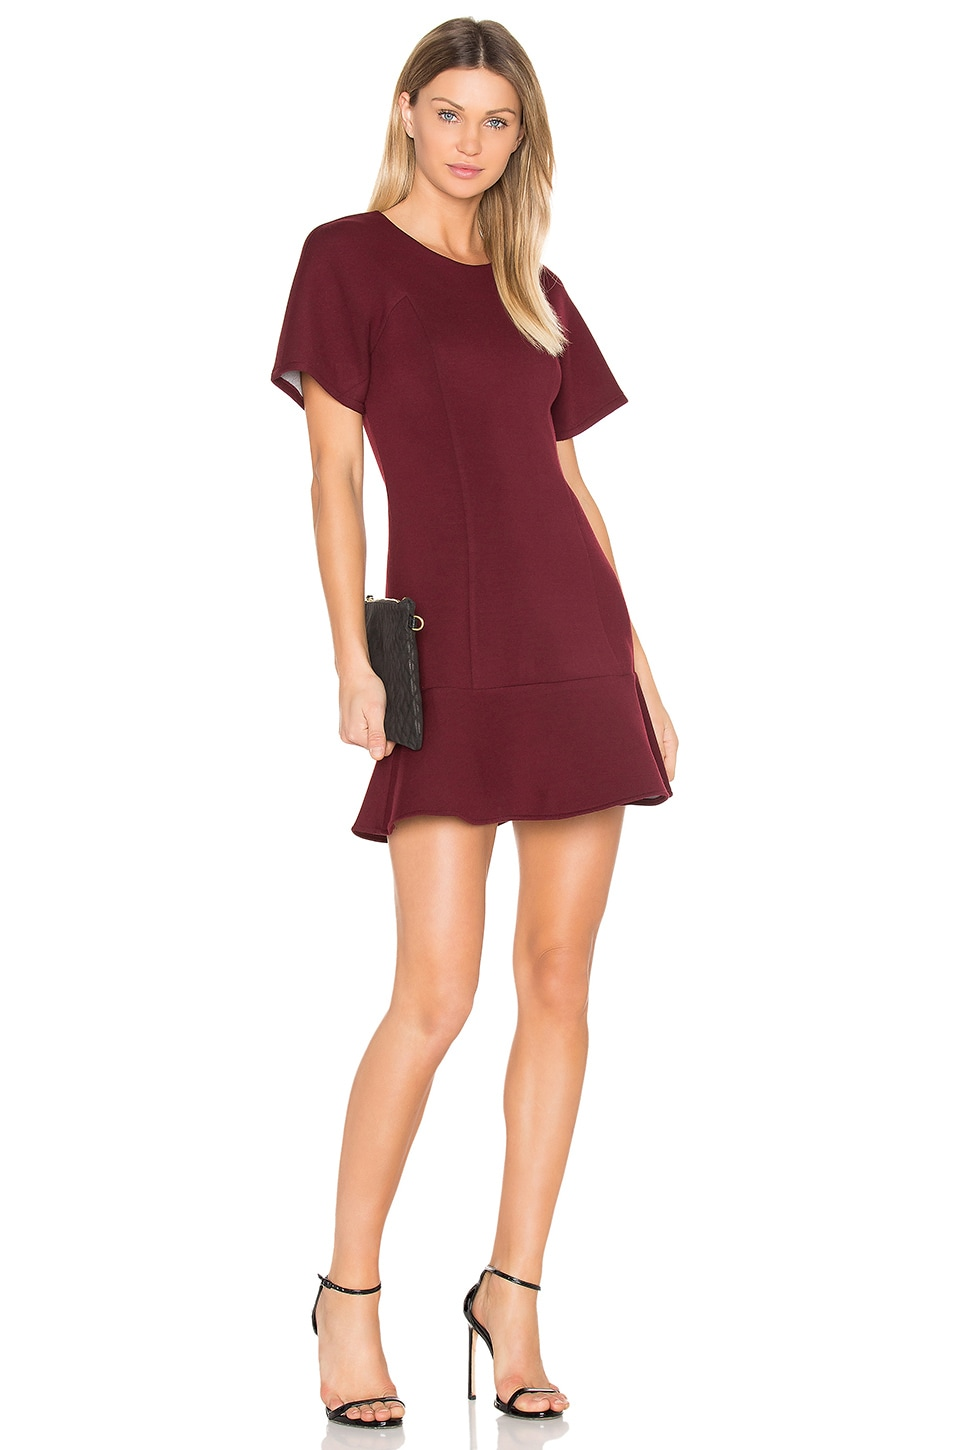 BLQ BASIQ Tee Flare Dress in Wine